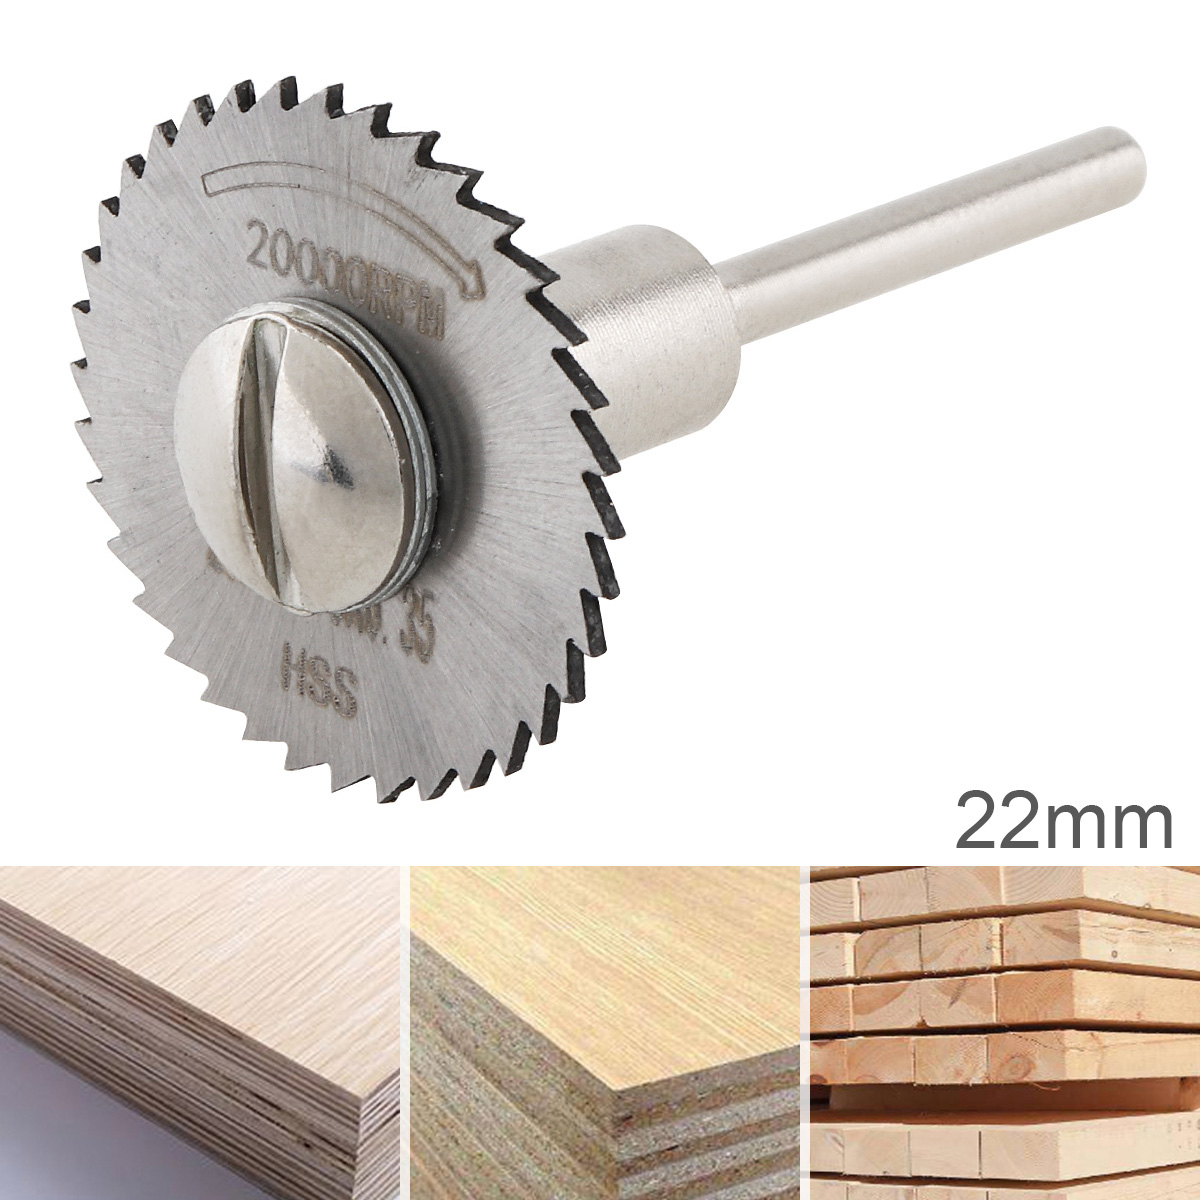 22mm 25mm 32mm HSS High Speed Steel Mini Circular Saw Blade Cutting Tool Mandrel Disc Blade With Connecting Rod